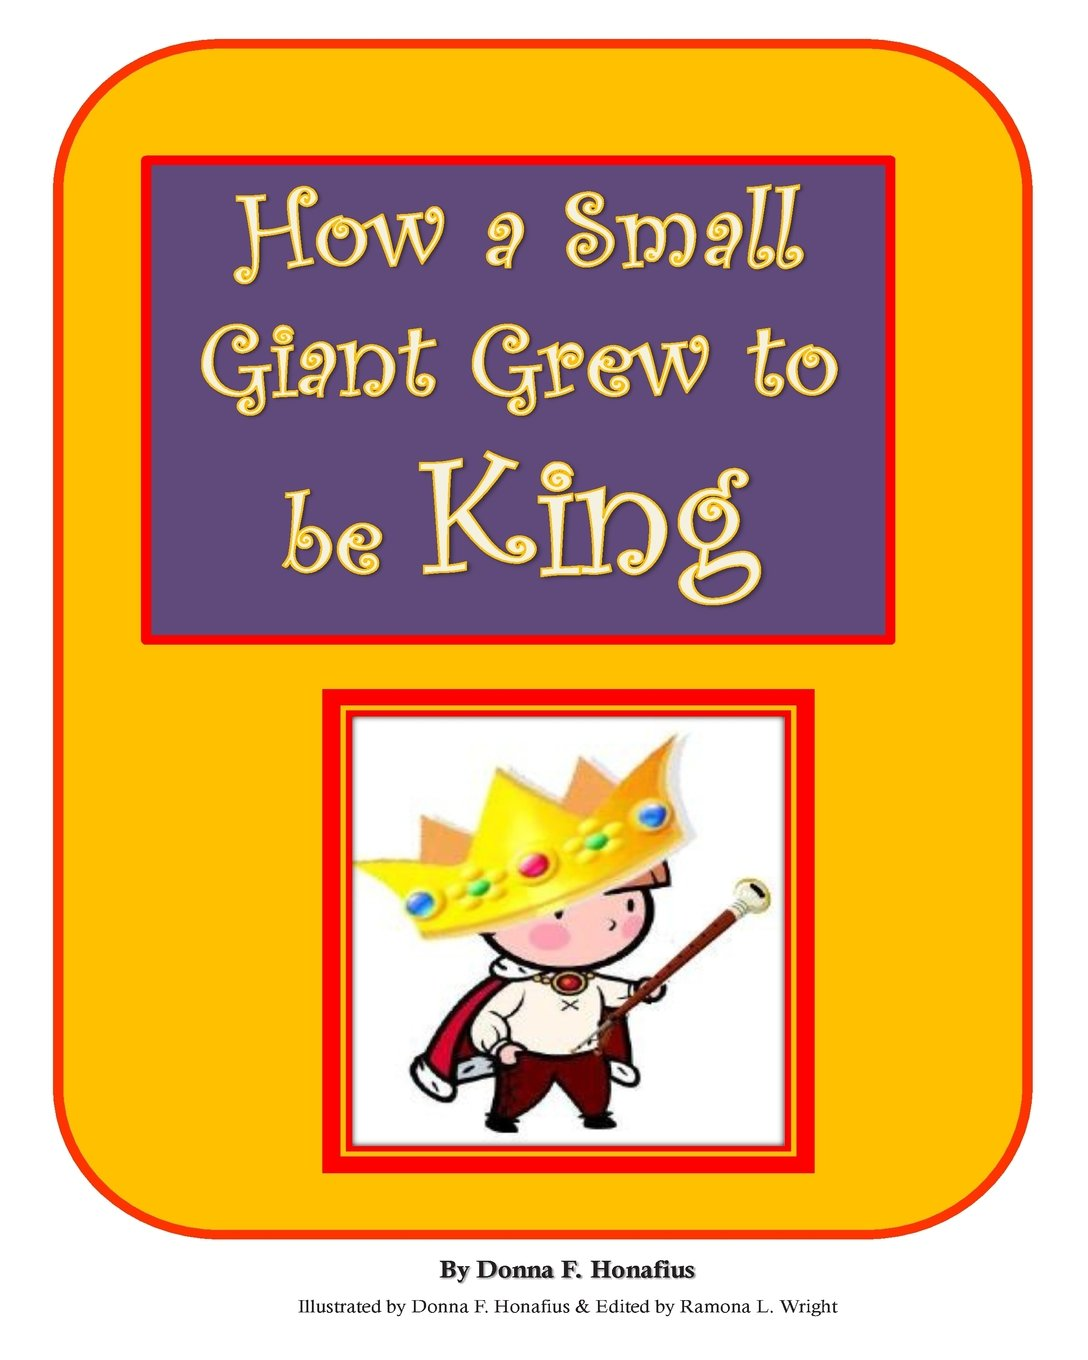 Read Online How a Small Giant Grew to be King PDF ePub fb2 book